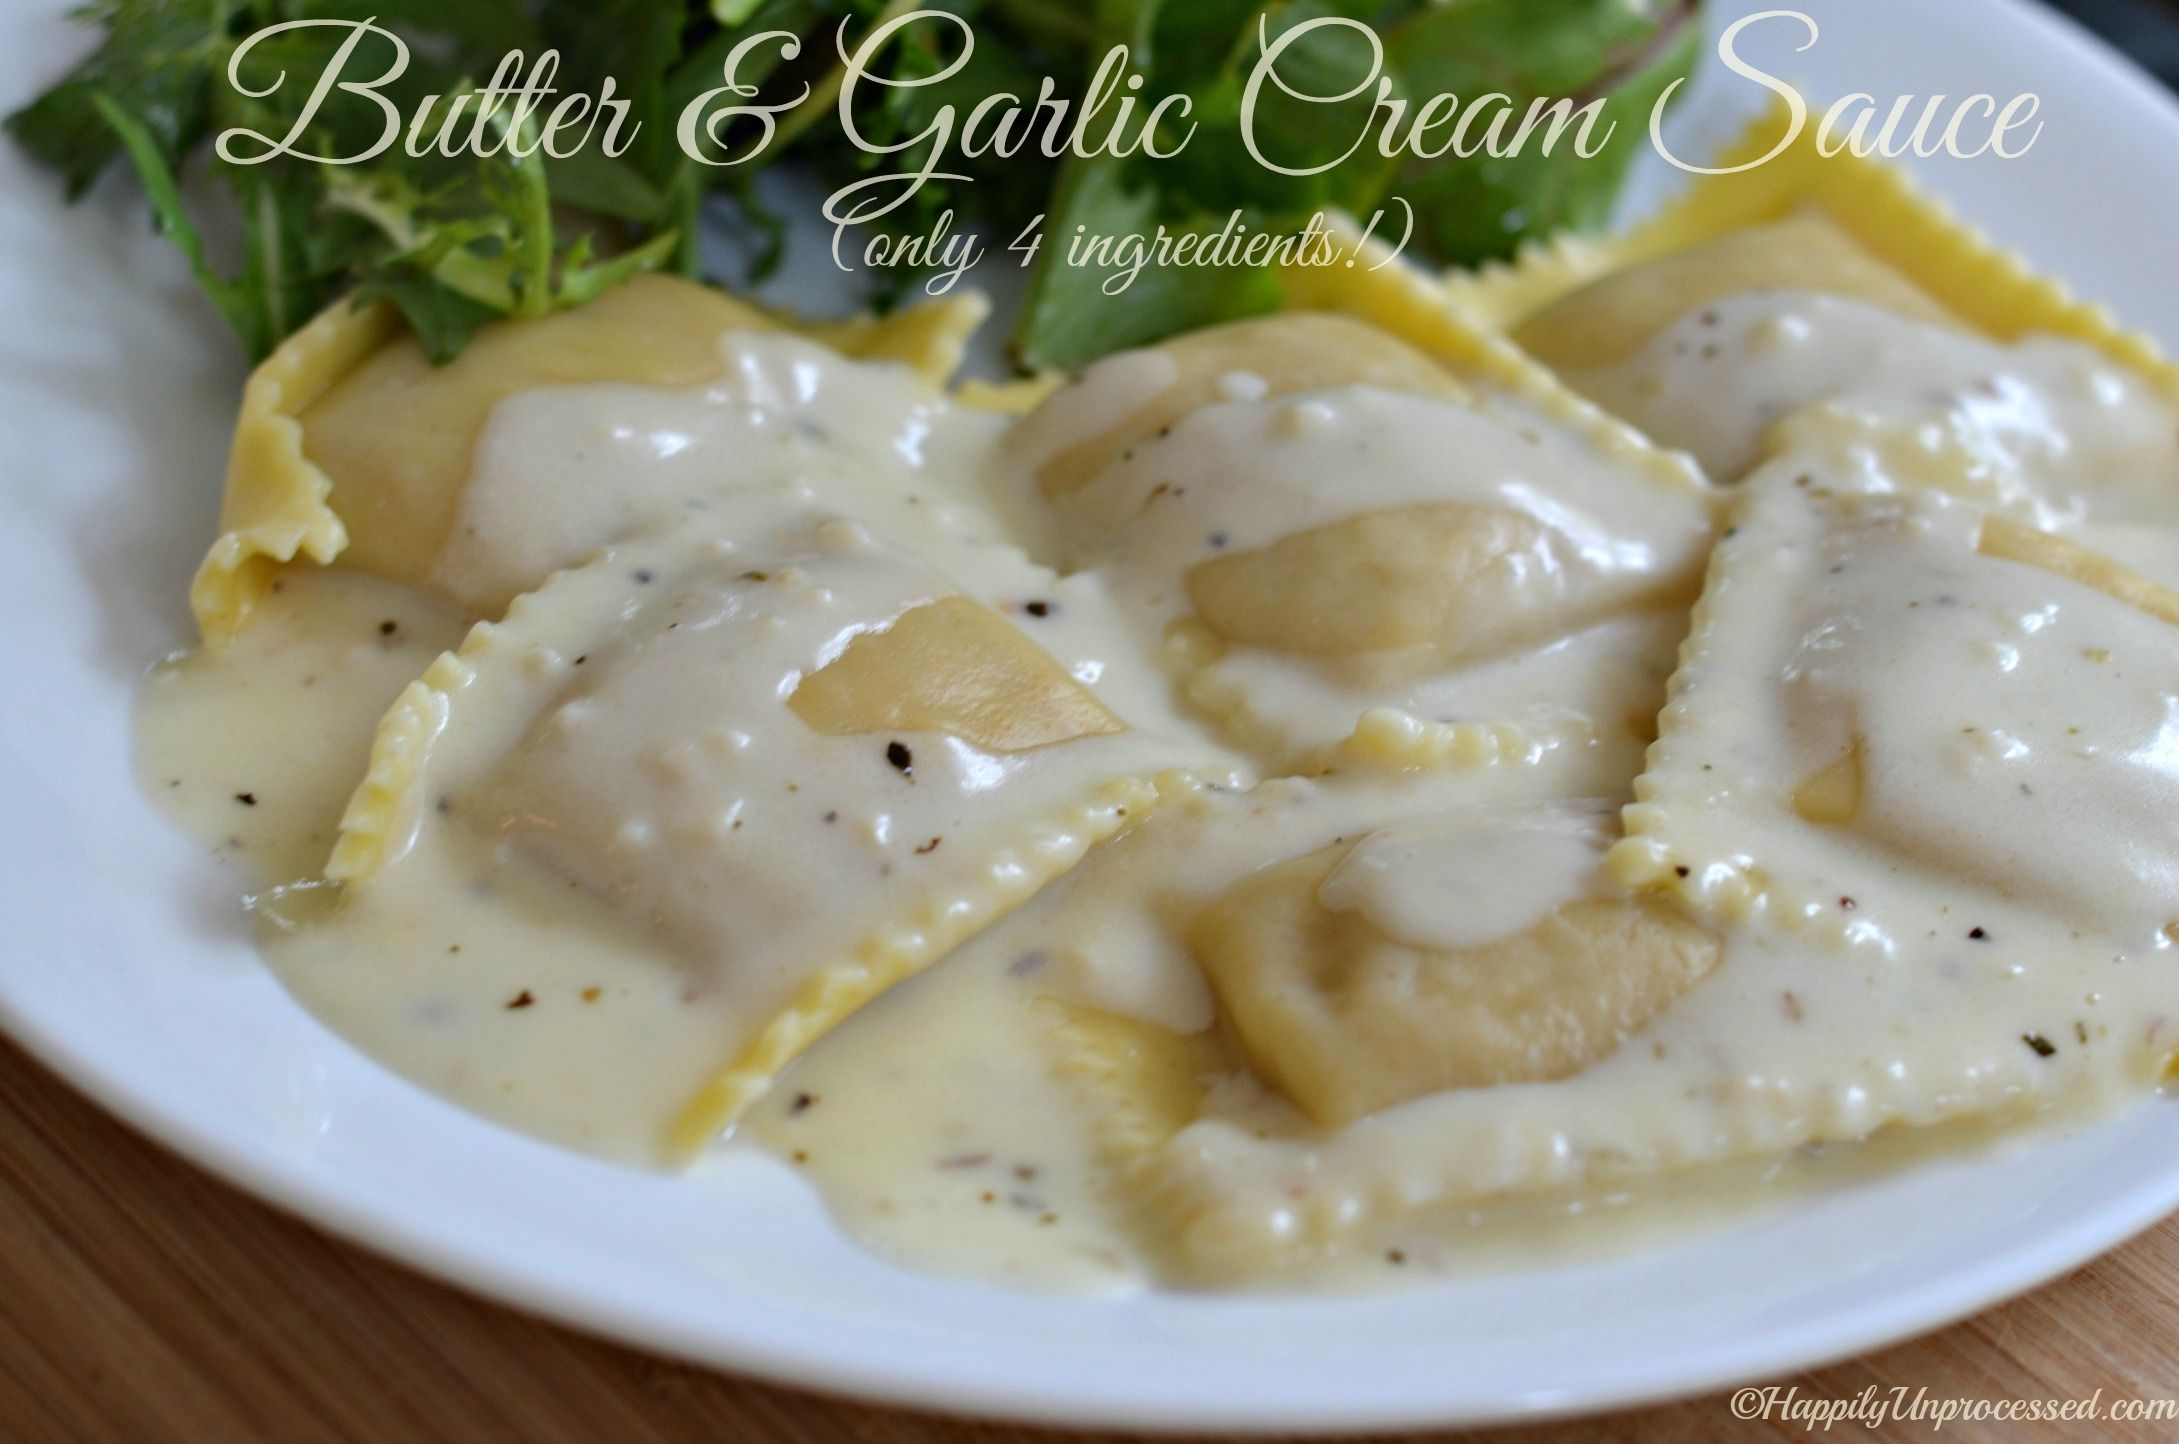 Butter and Garlic Cream Sauce - Ohmygoodness! This is SO GOOD! It was super easy and came together quickly. I served it over spinach ravioli from Sam's Club for the win!